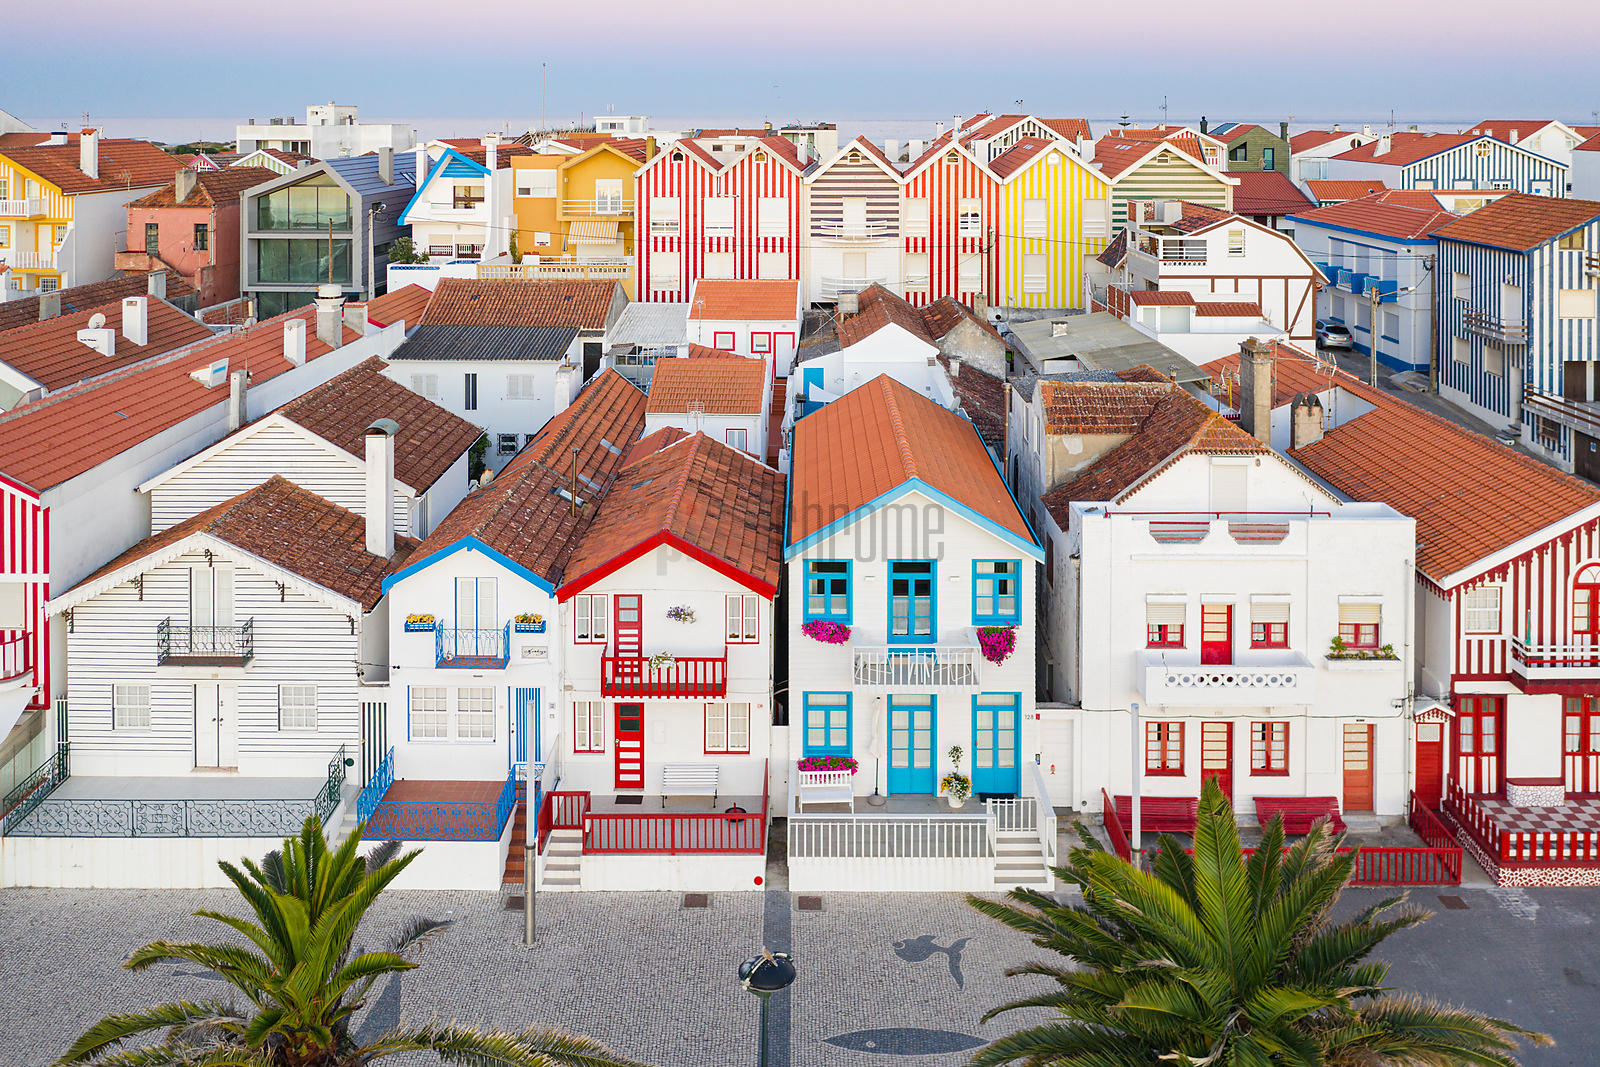 Aerial View of Colourful Houses at Costa Nova Beach